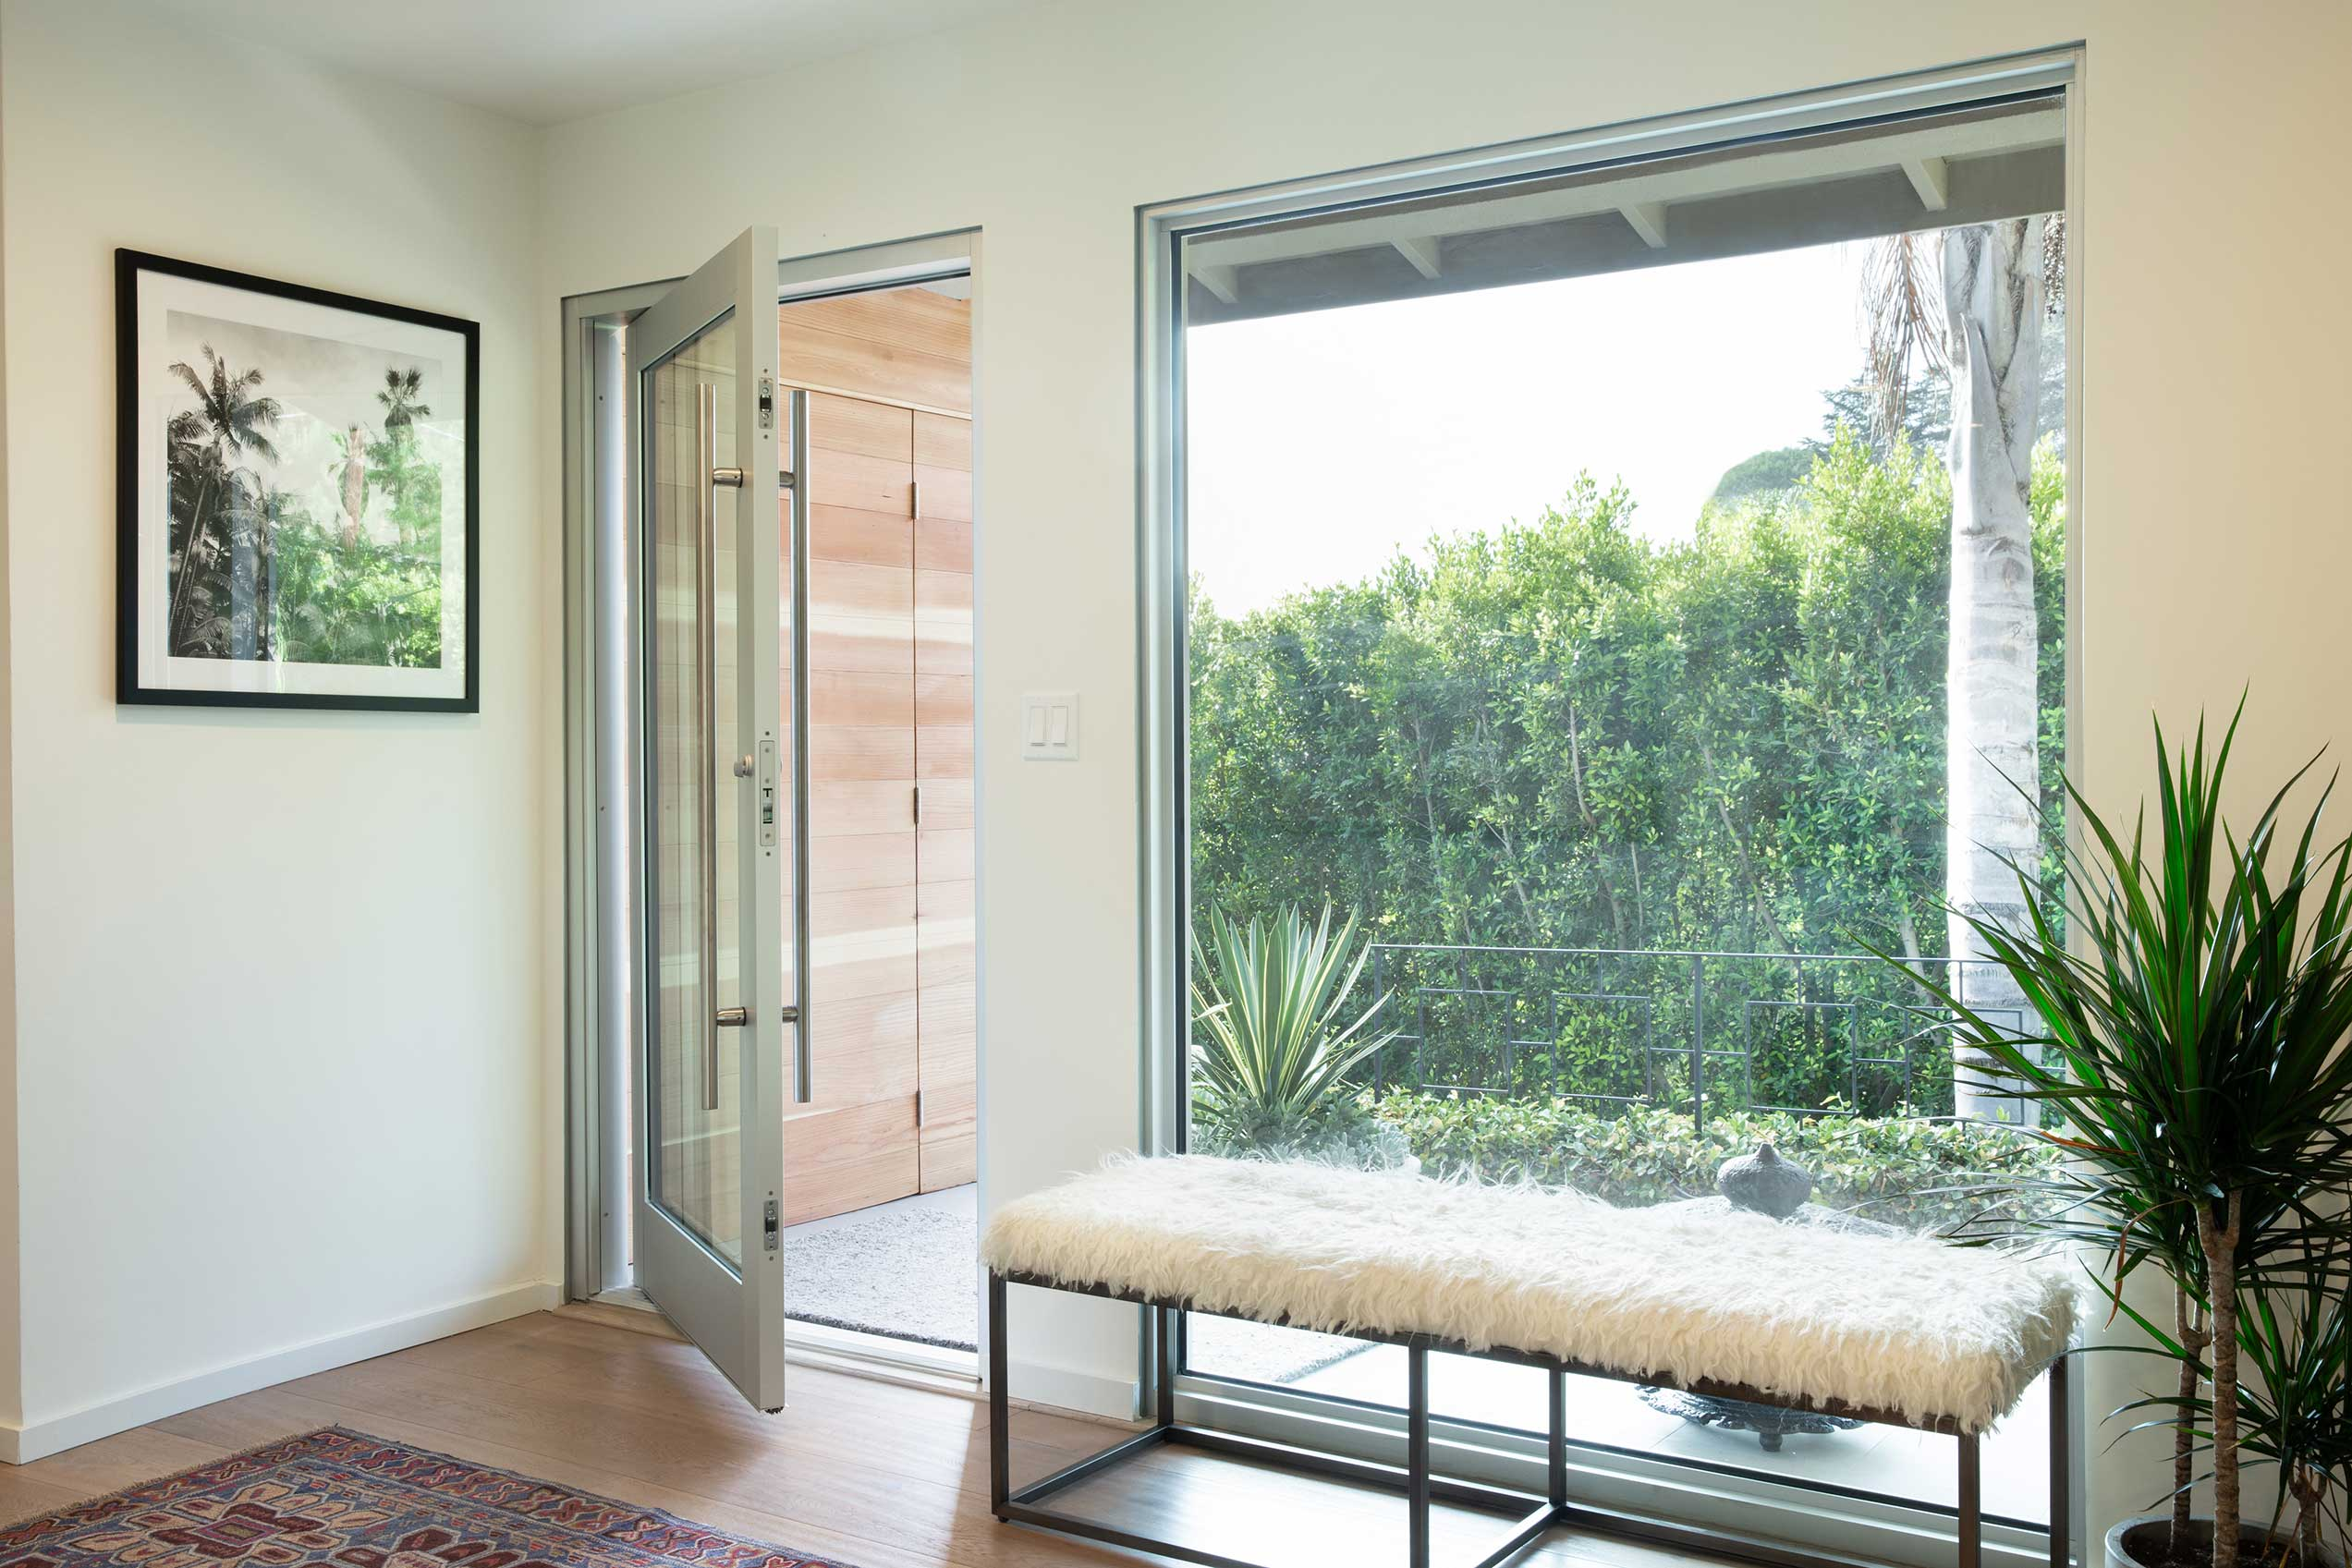 A pivot door and large fixed window provide energy efficiency to go along with clean, contemporary aesthetics.